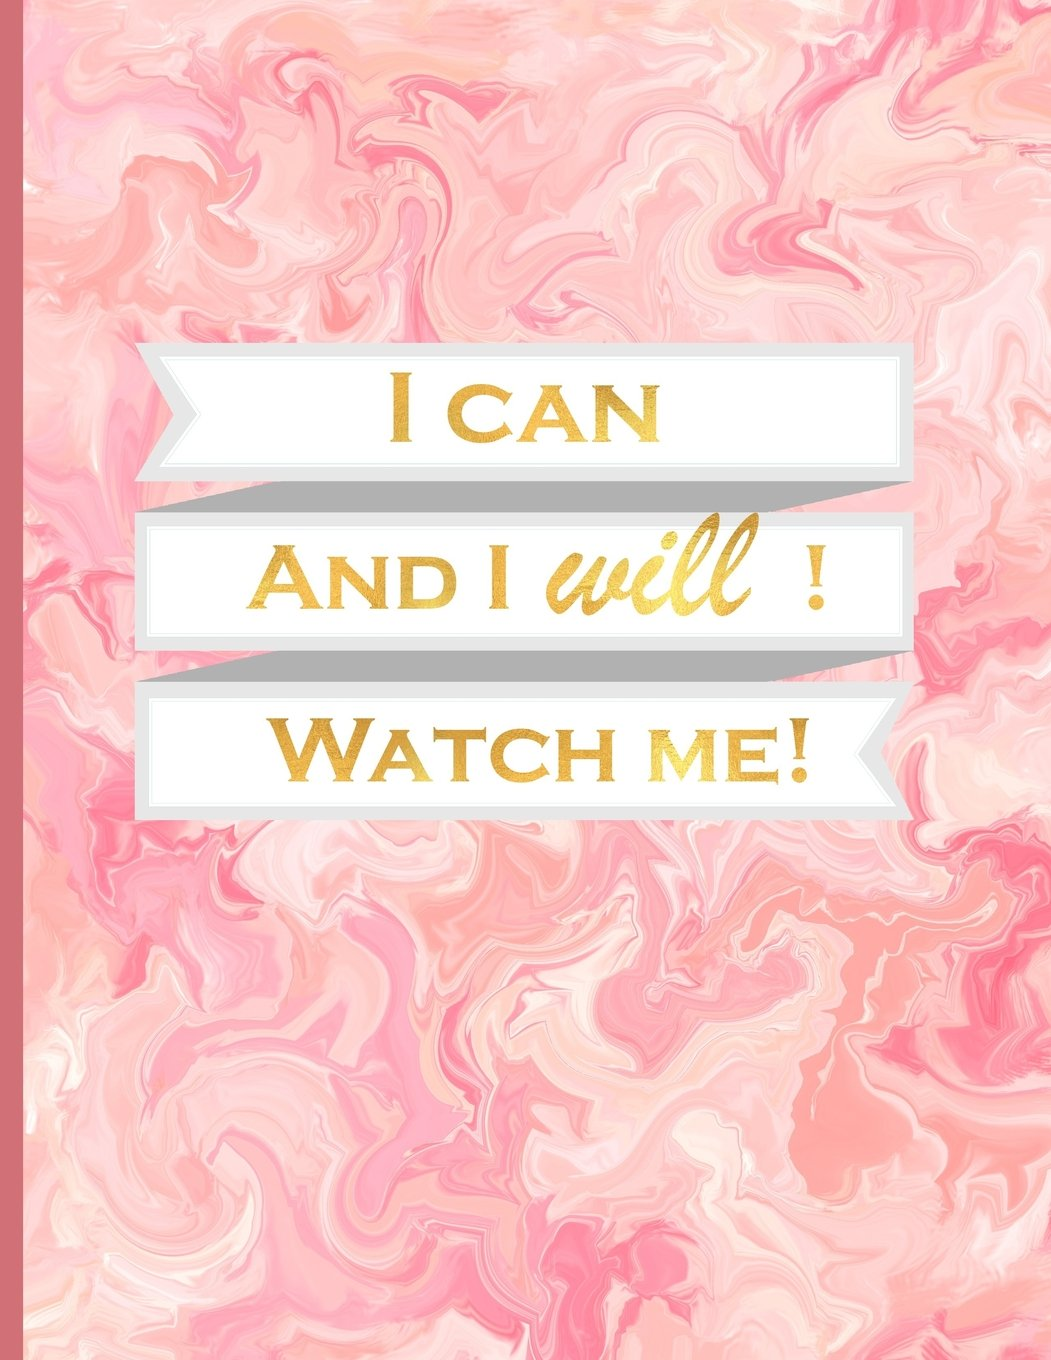 i-can-and-i-will-watch-me-journal-notebook-with-110-inspirational-quotes-inside-inspirational-thoughts-for-every-day-inspirational-quotes-21-5x28-cm-journals-to-write-in-for-women